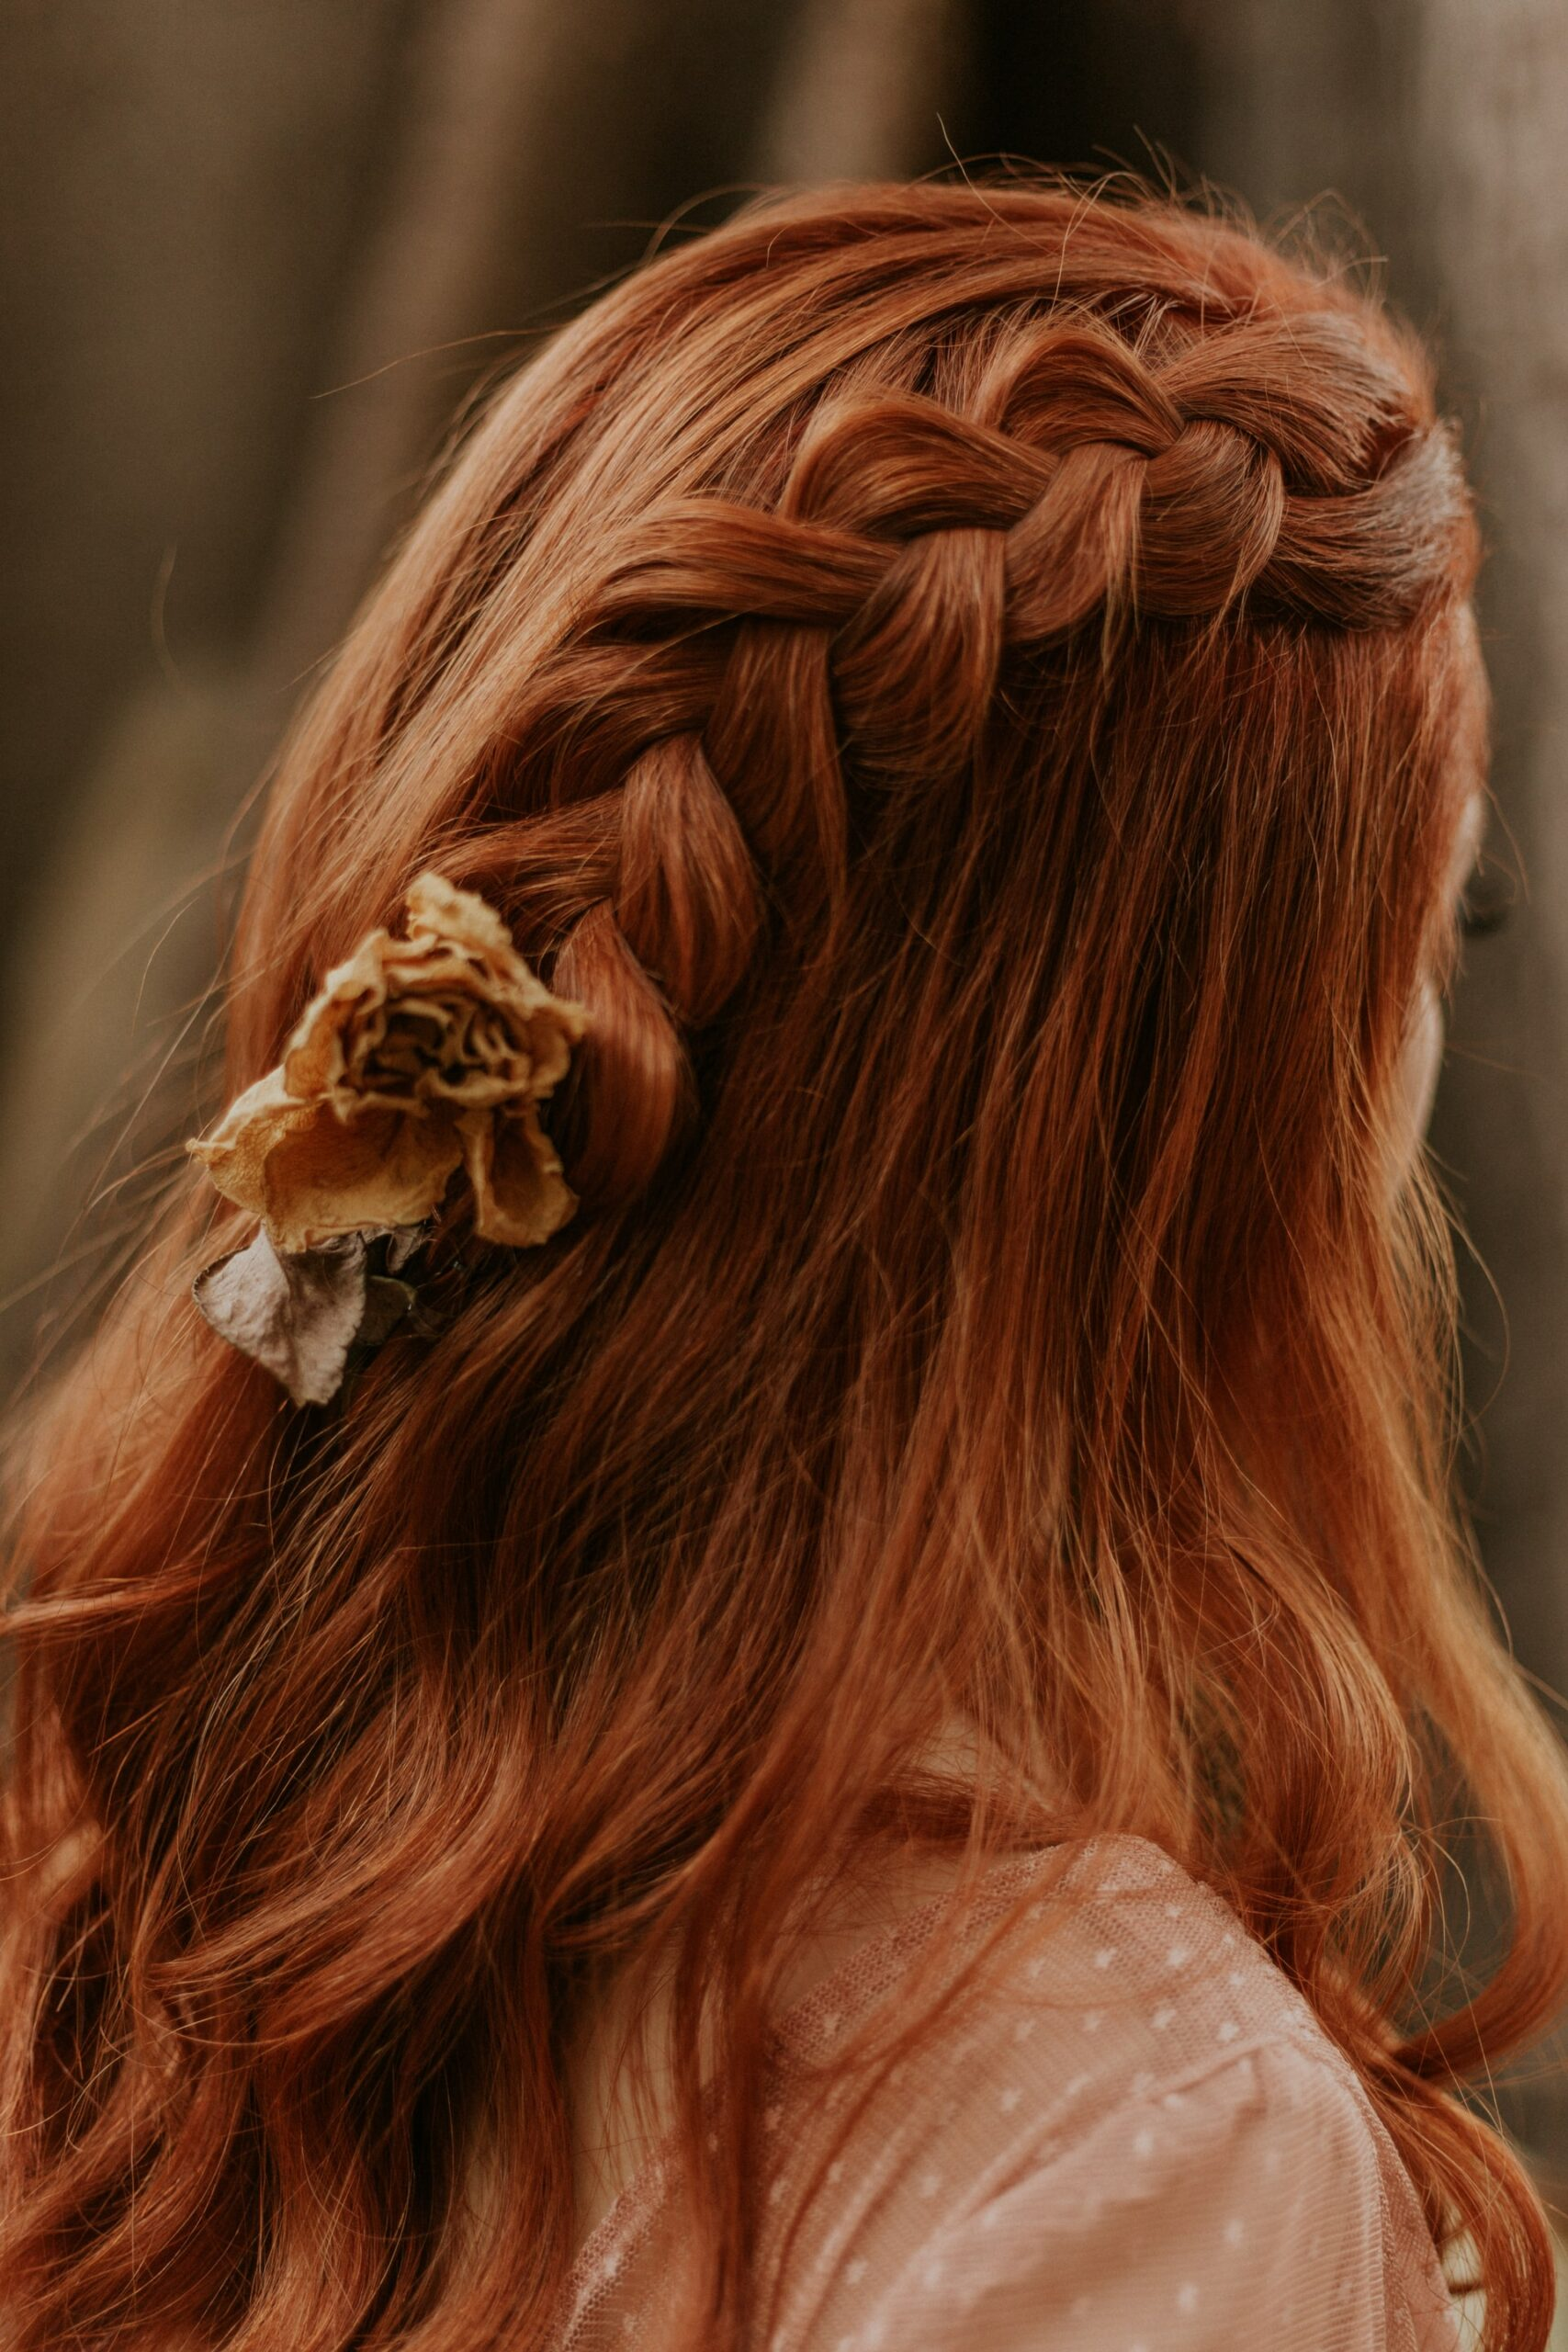 How To Choose The Ideal Hair Accessories To Prevent Hair Breakage